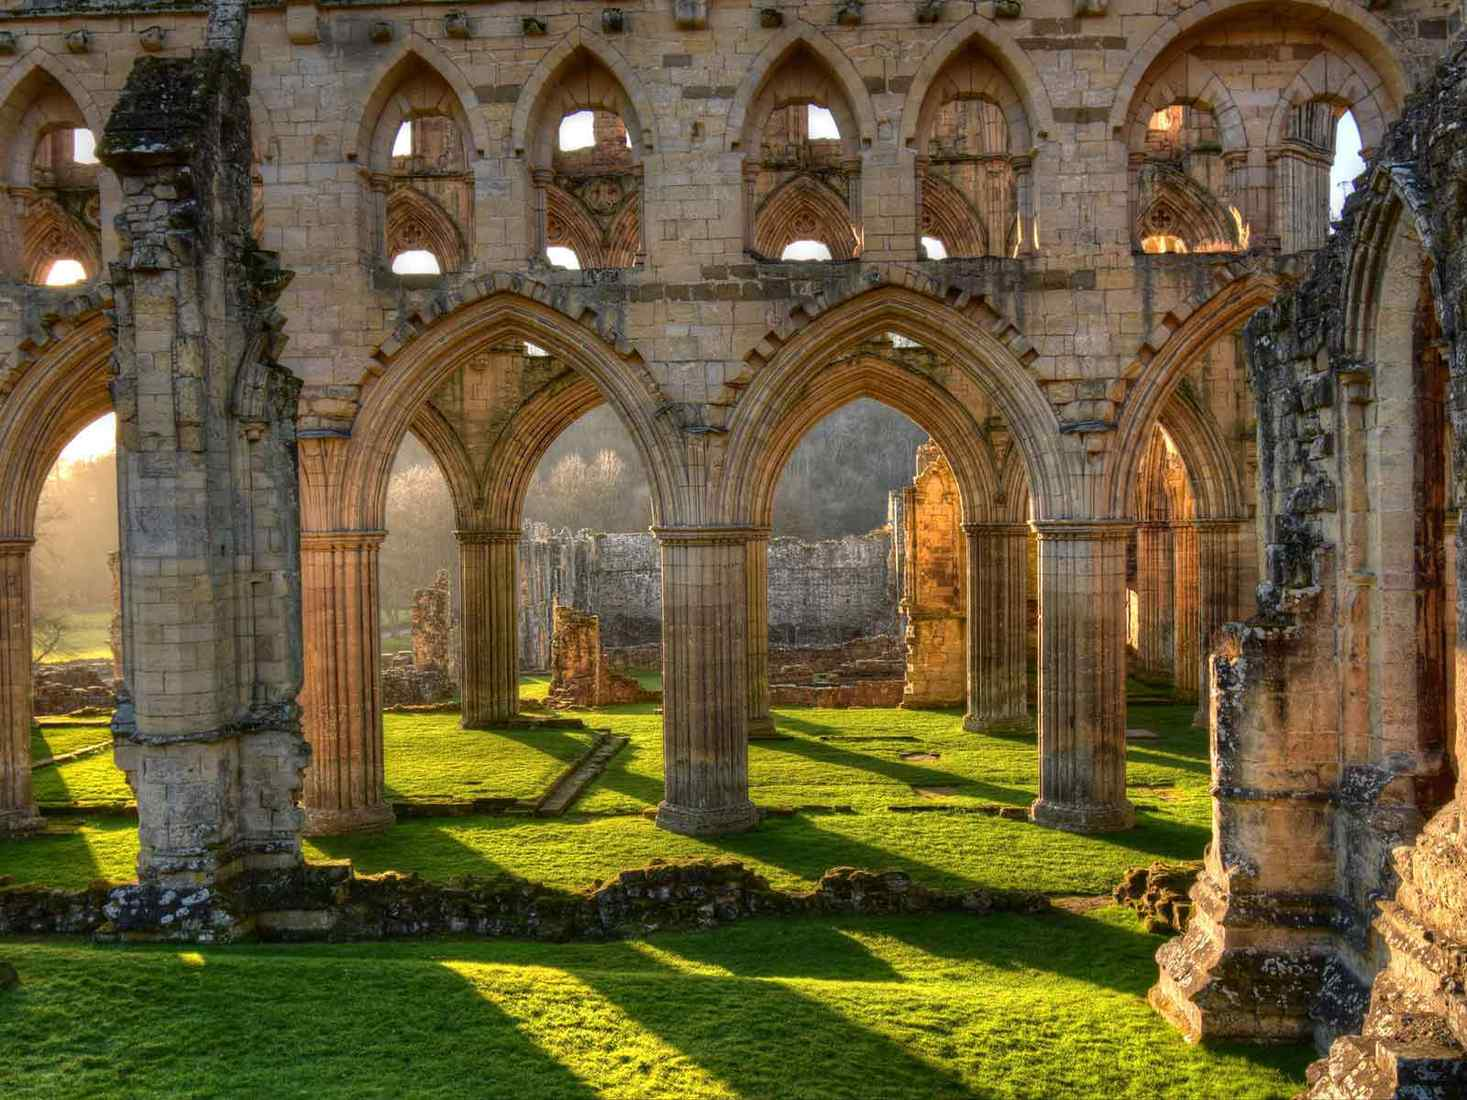 Ruins of an Abbey in sunshine